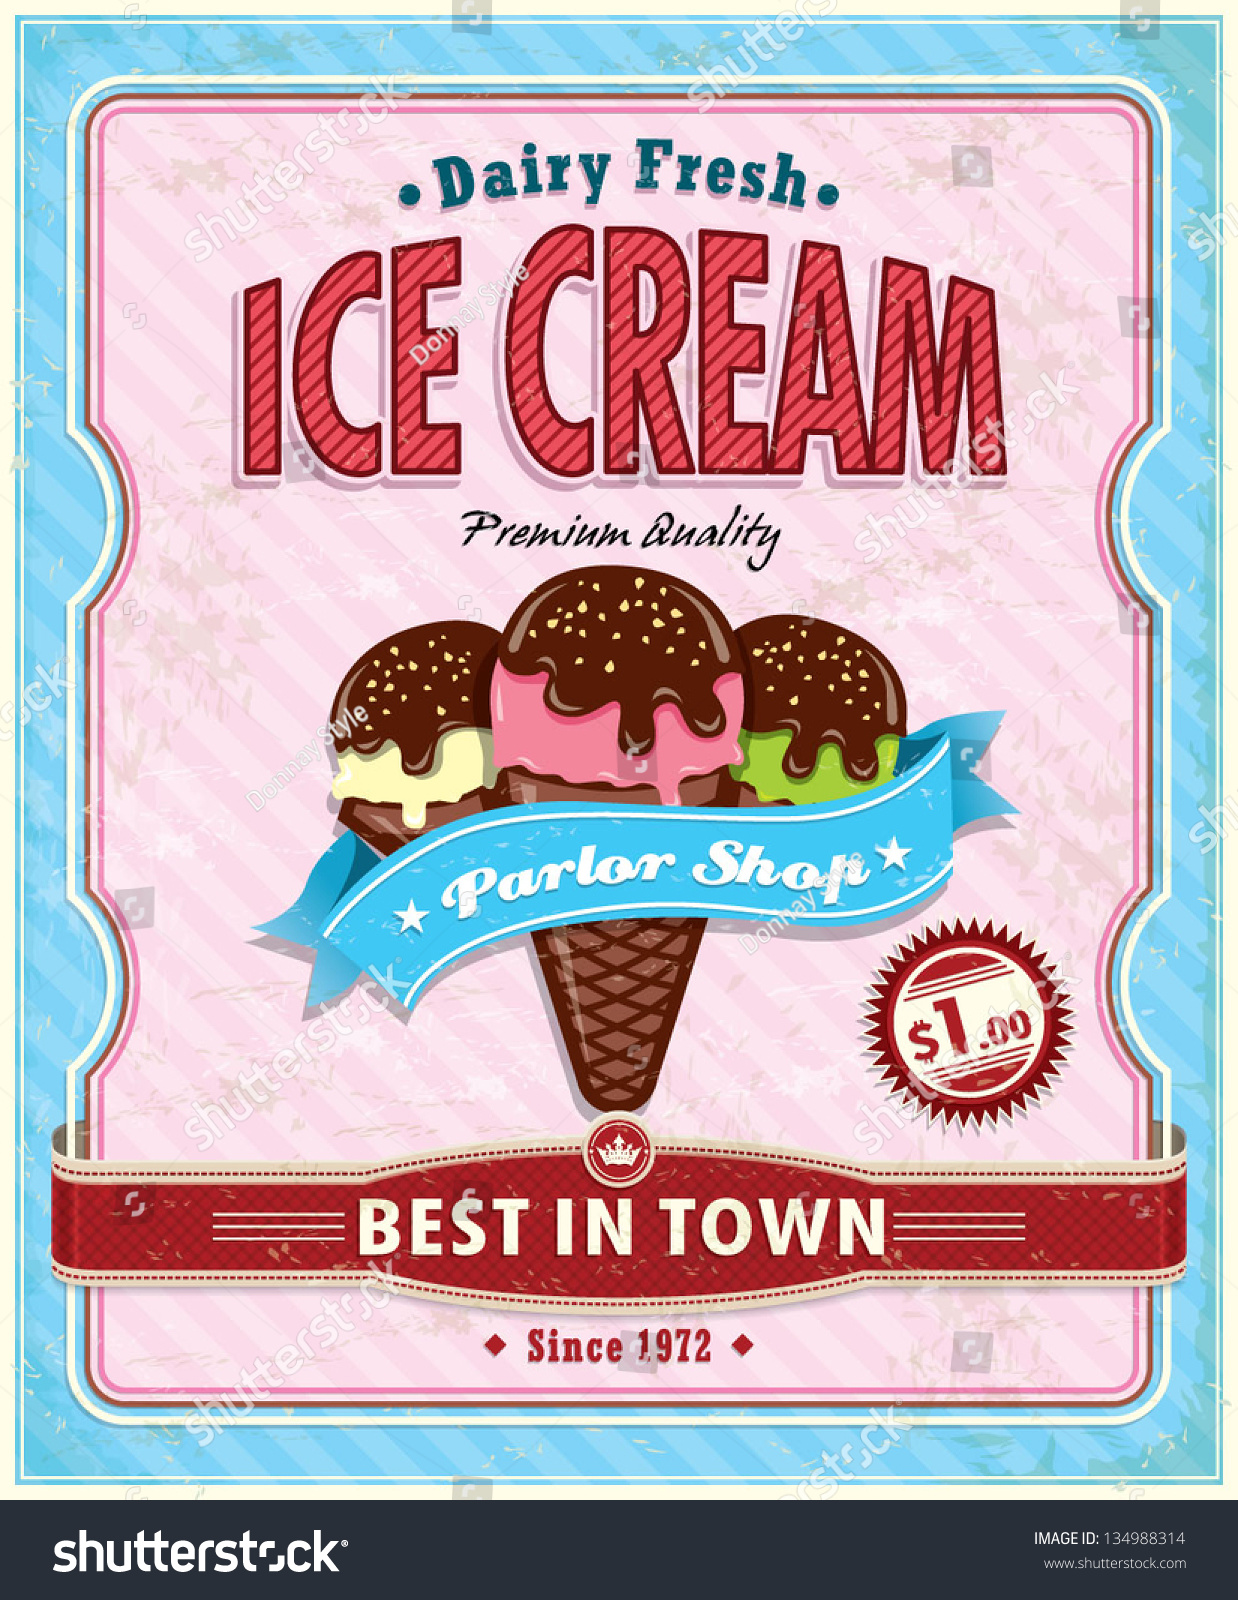 Vintage Ice Cream Poster Design Stock Vector 134988314 - Shutterstock